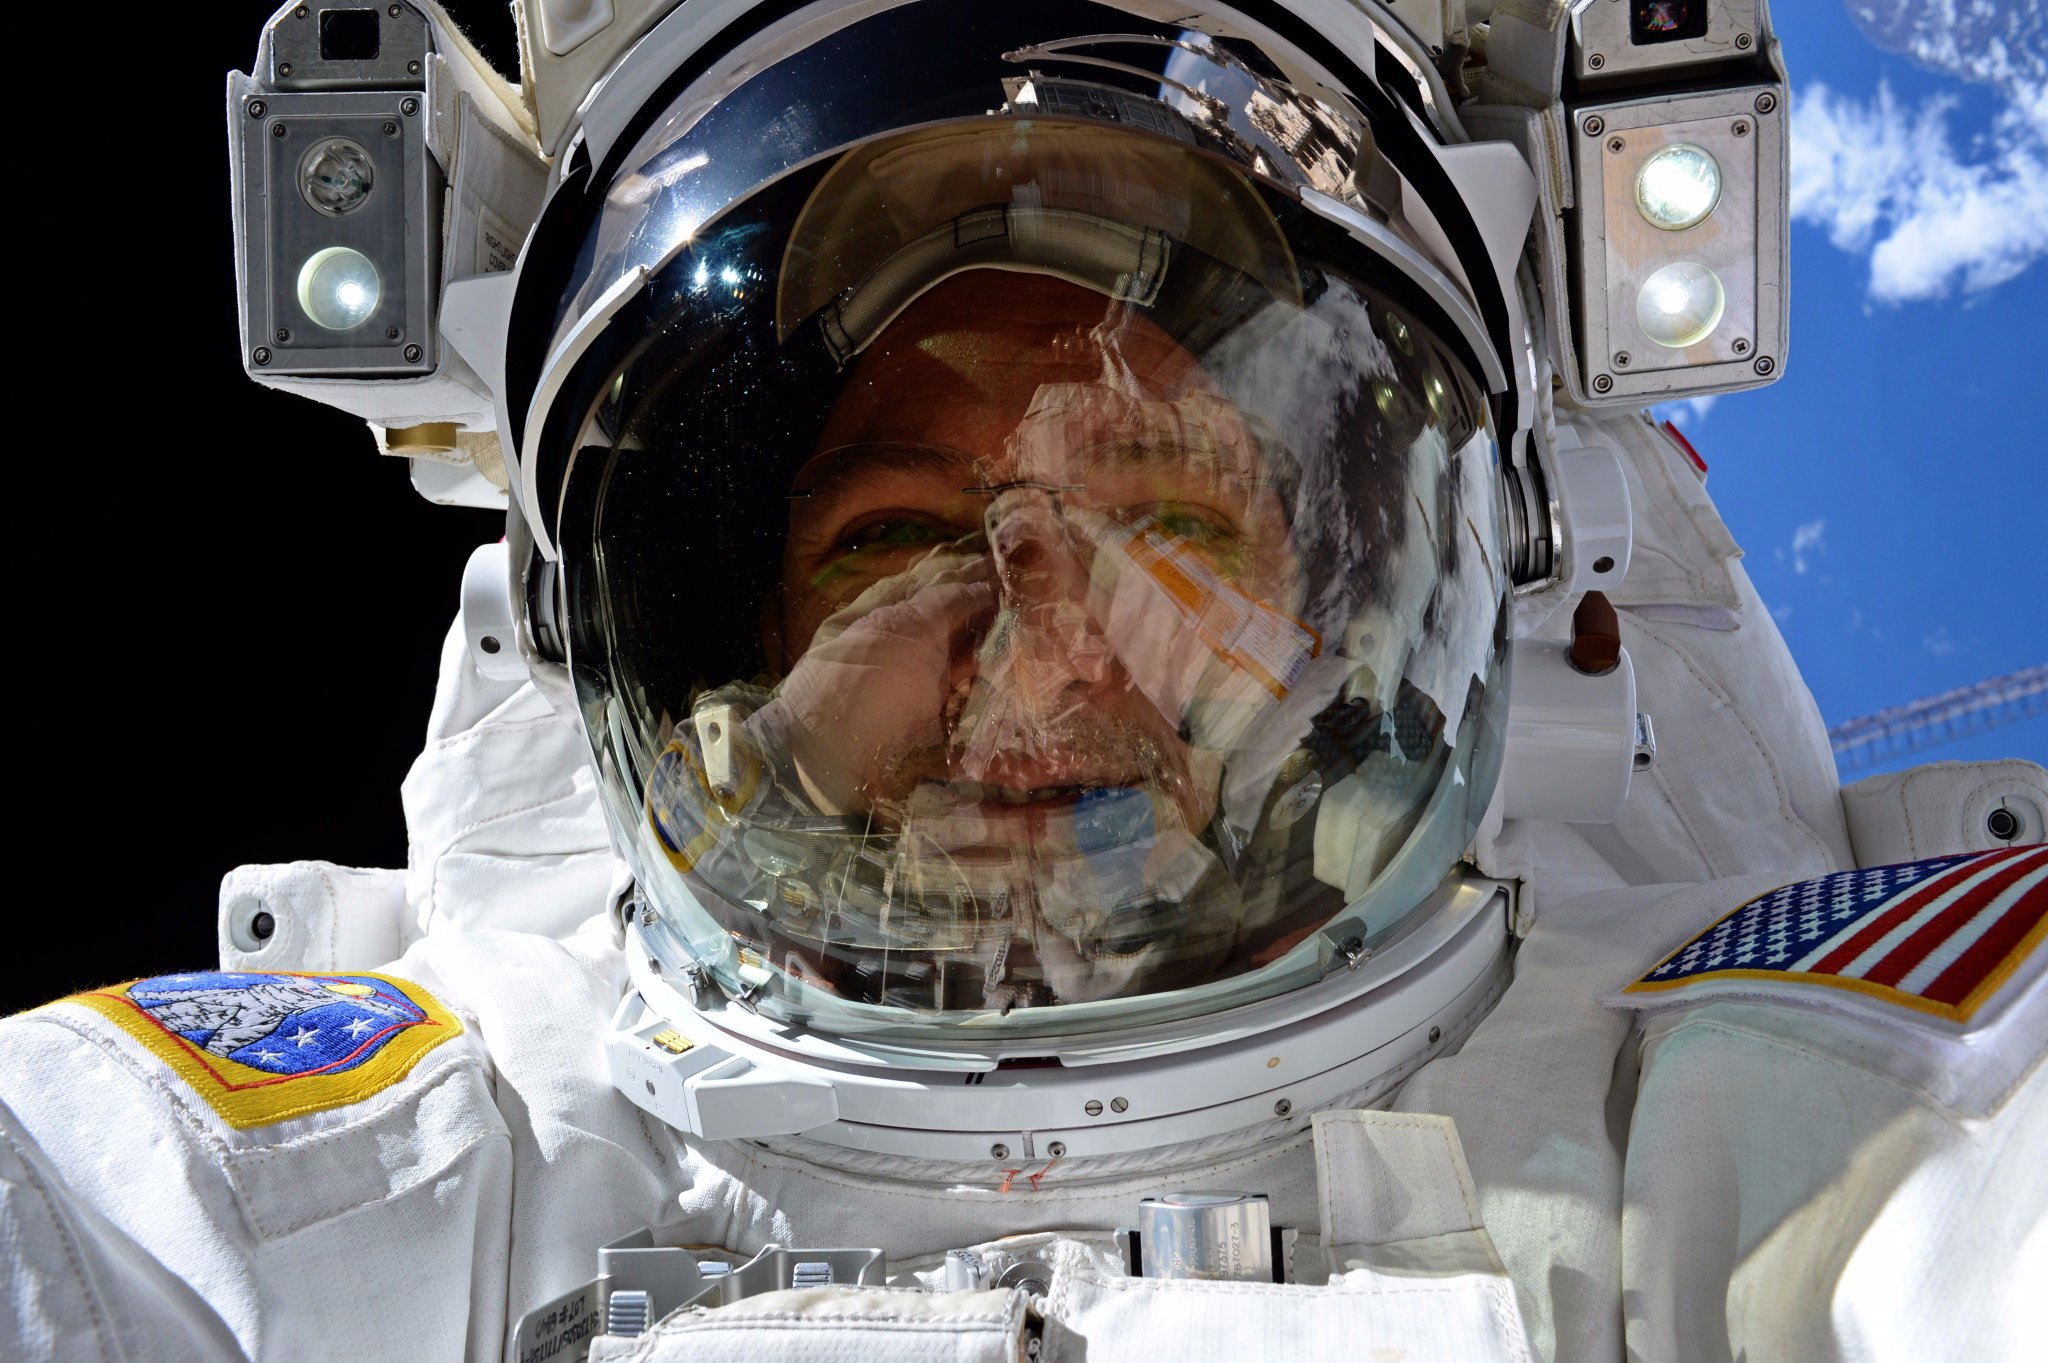 #Spacewalk selfie on this #SelfieSunday . A day at the office doesn't get any better than this! https://t.co/owd9rKX3un